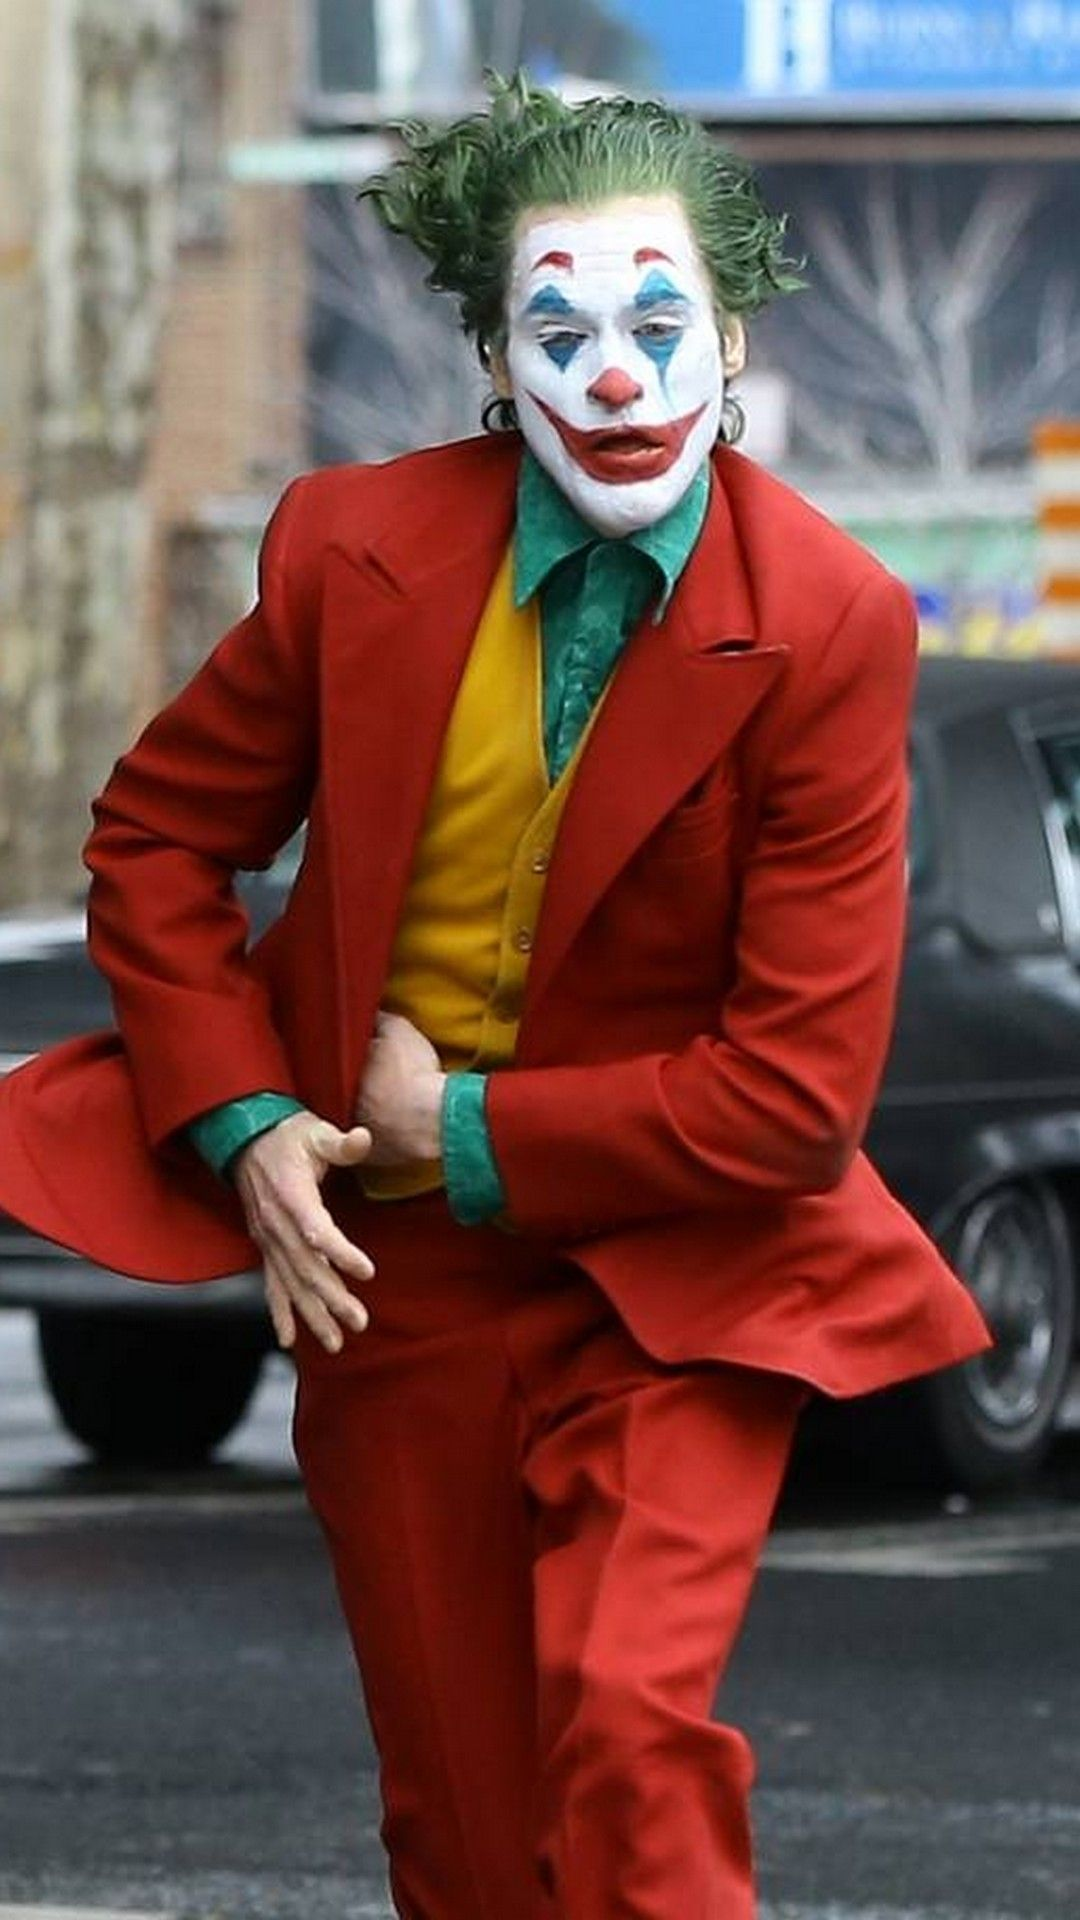 Joker 2019 Iphone X Wallpaper Best Movie Poster Wallpaper